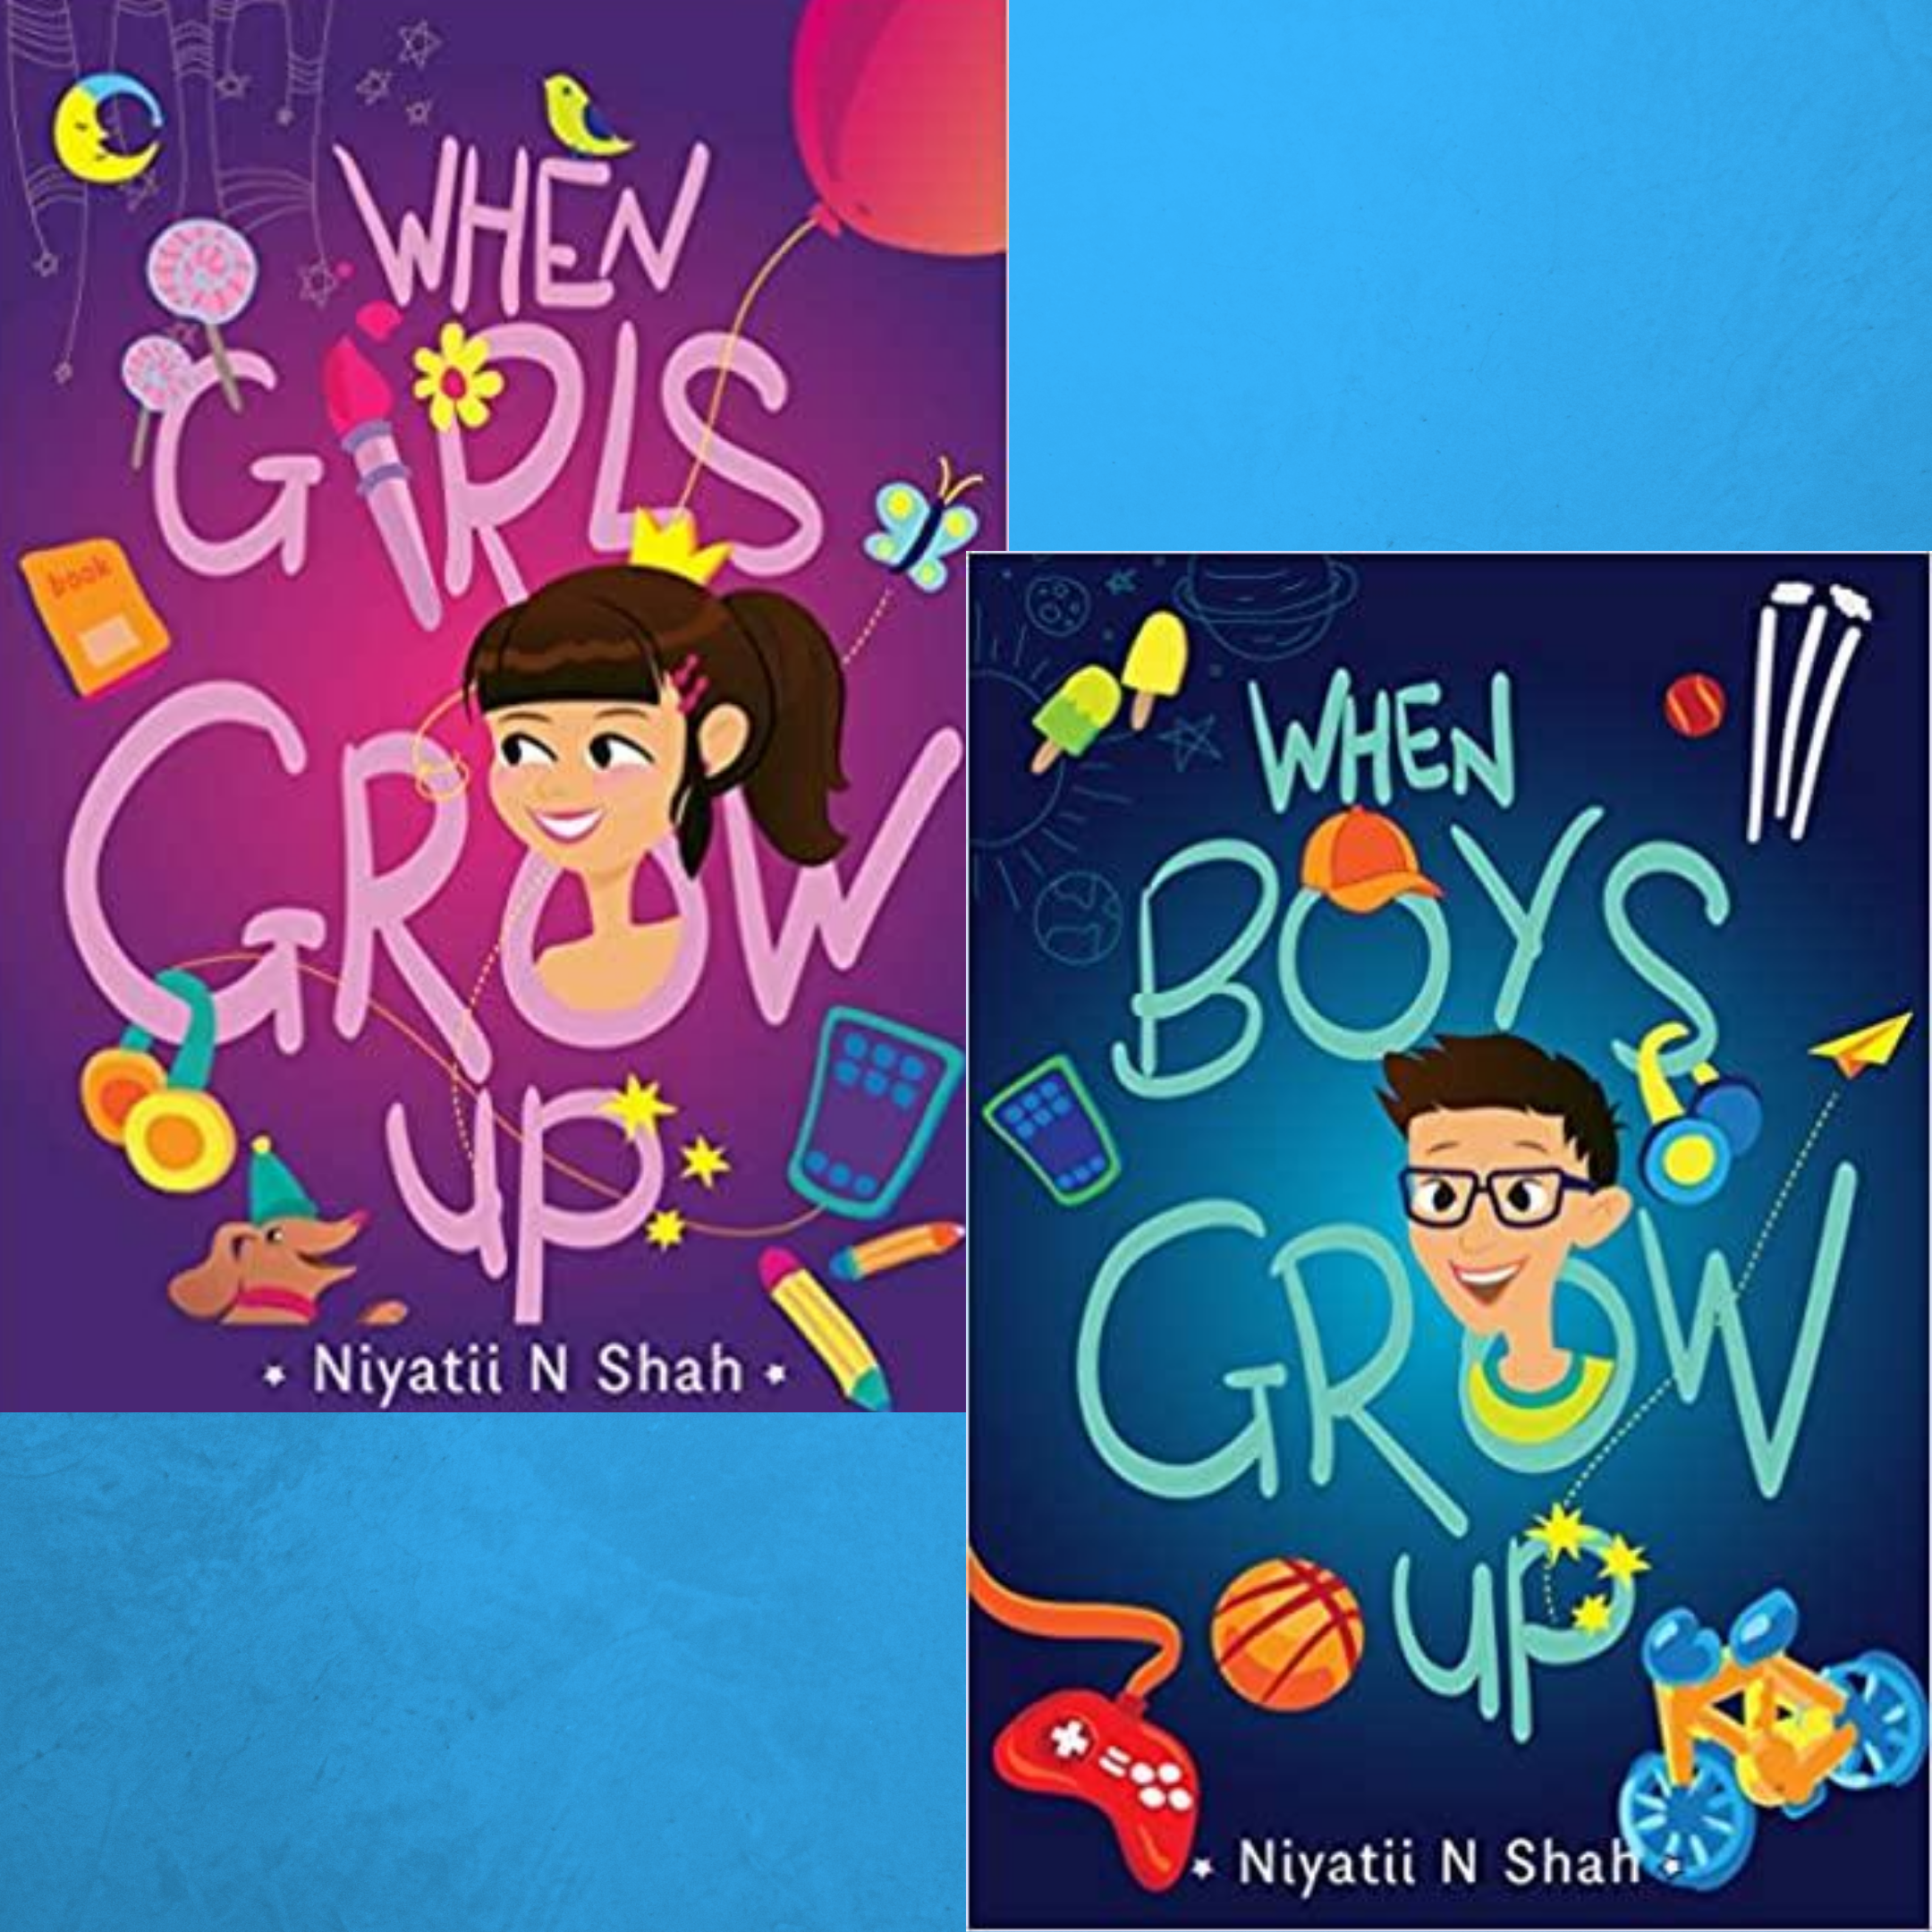 Puberty is an important milestone in the lives of children. Sexuality Educator Counsellor Niyati Shah's books on puberty seek to demystify the process for children. Informative and simple to understand these are a must-read for tweens and teens…and parents!